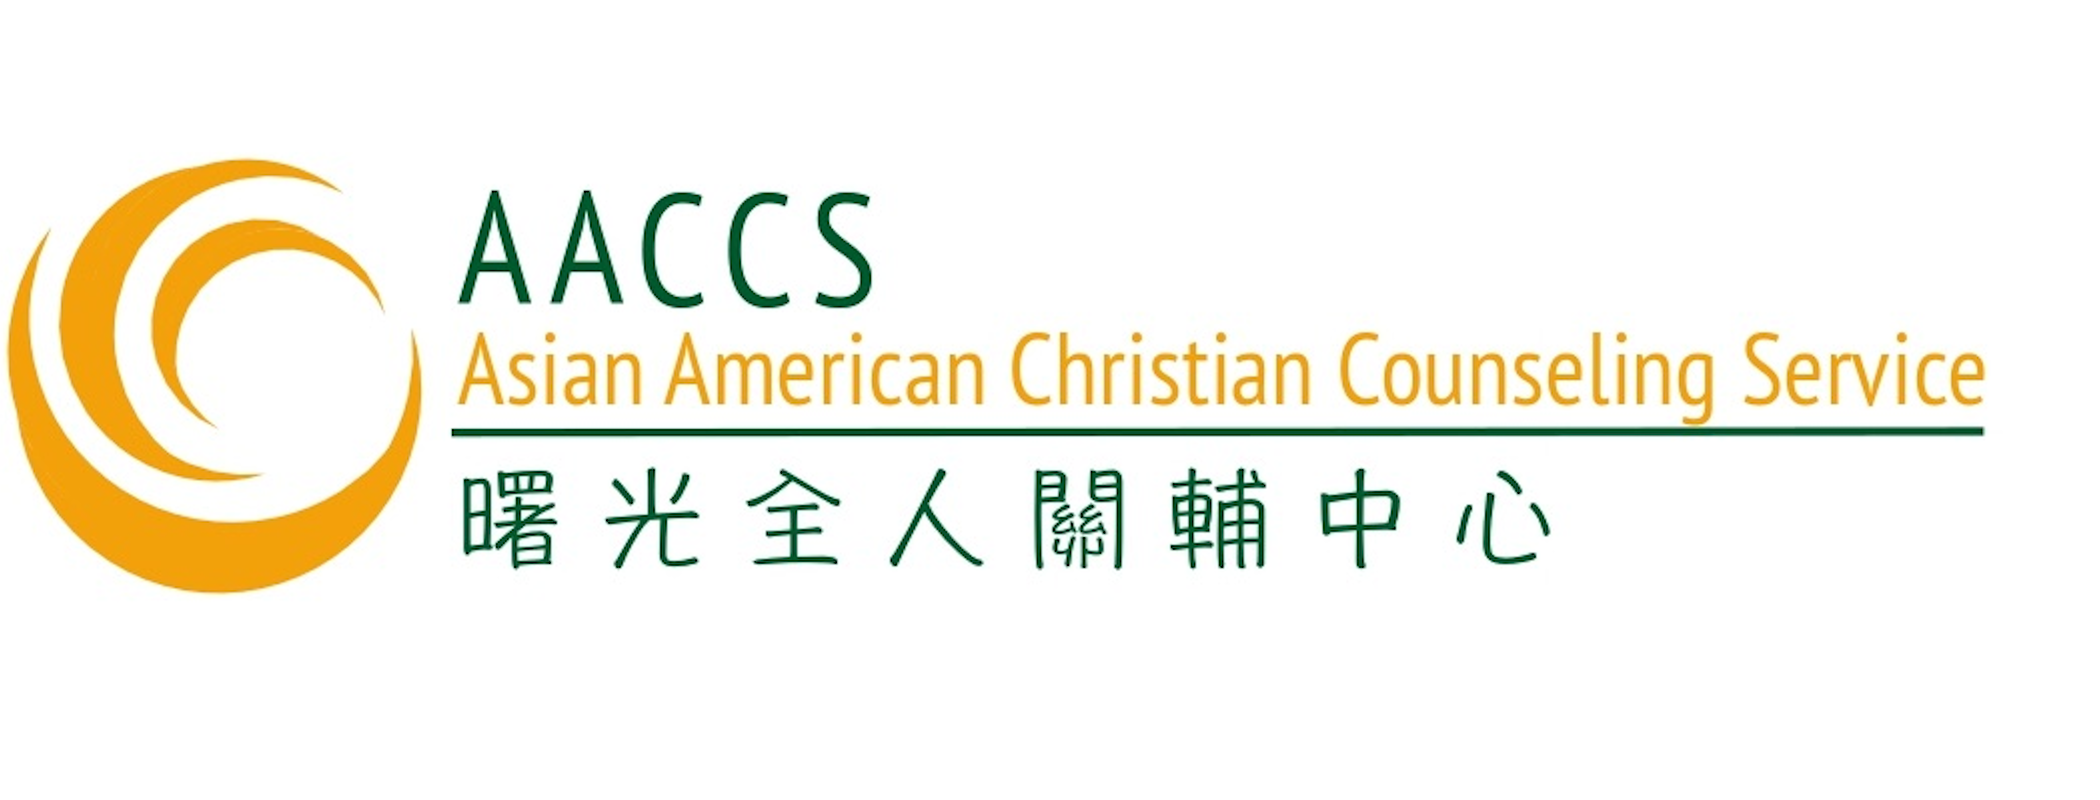 - Asian American Christian Counseling Service2550 W. Main St., Suite 202Alhambra 91801(626) 457-2900 | aaccs.org